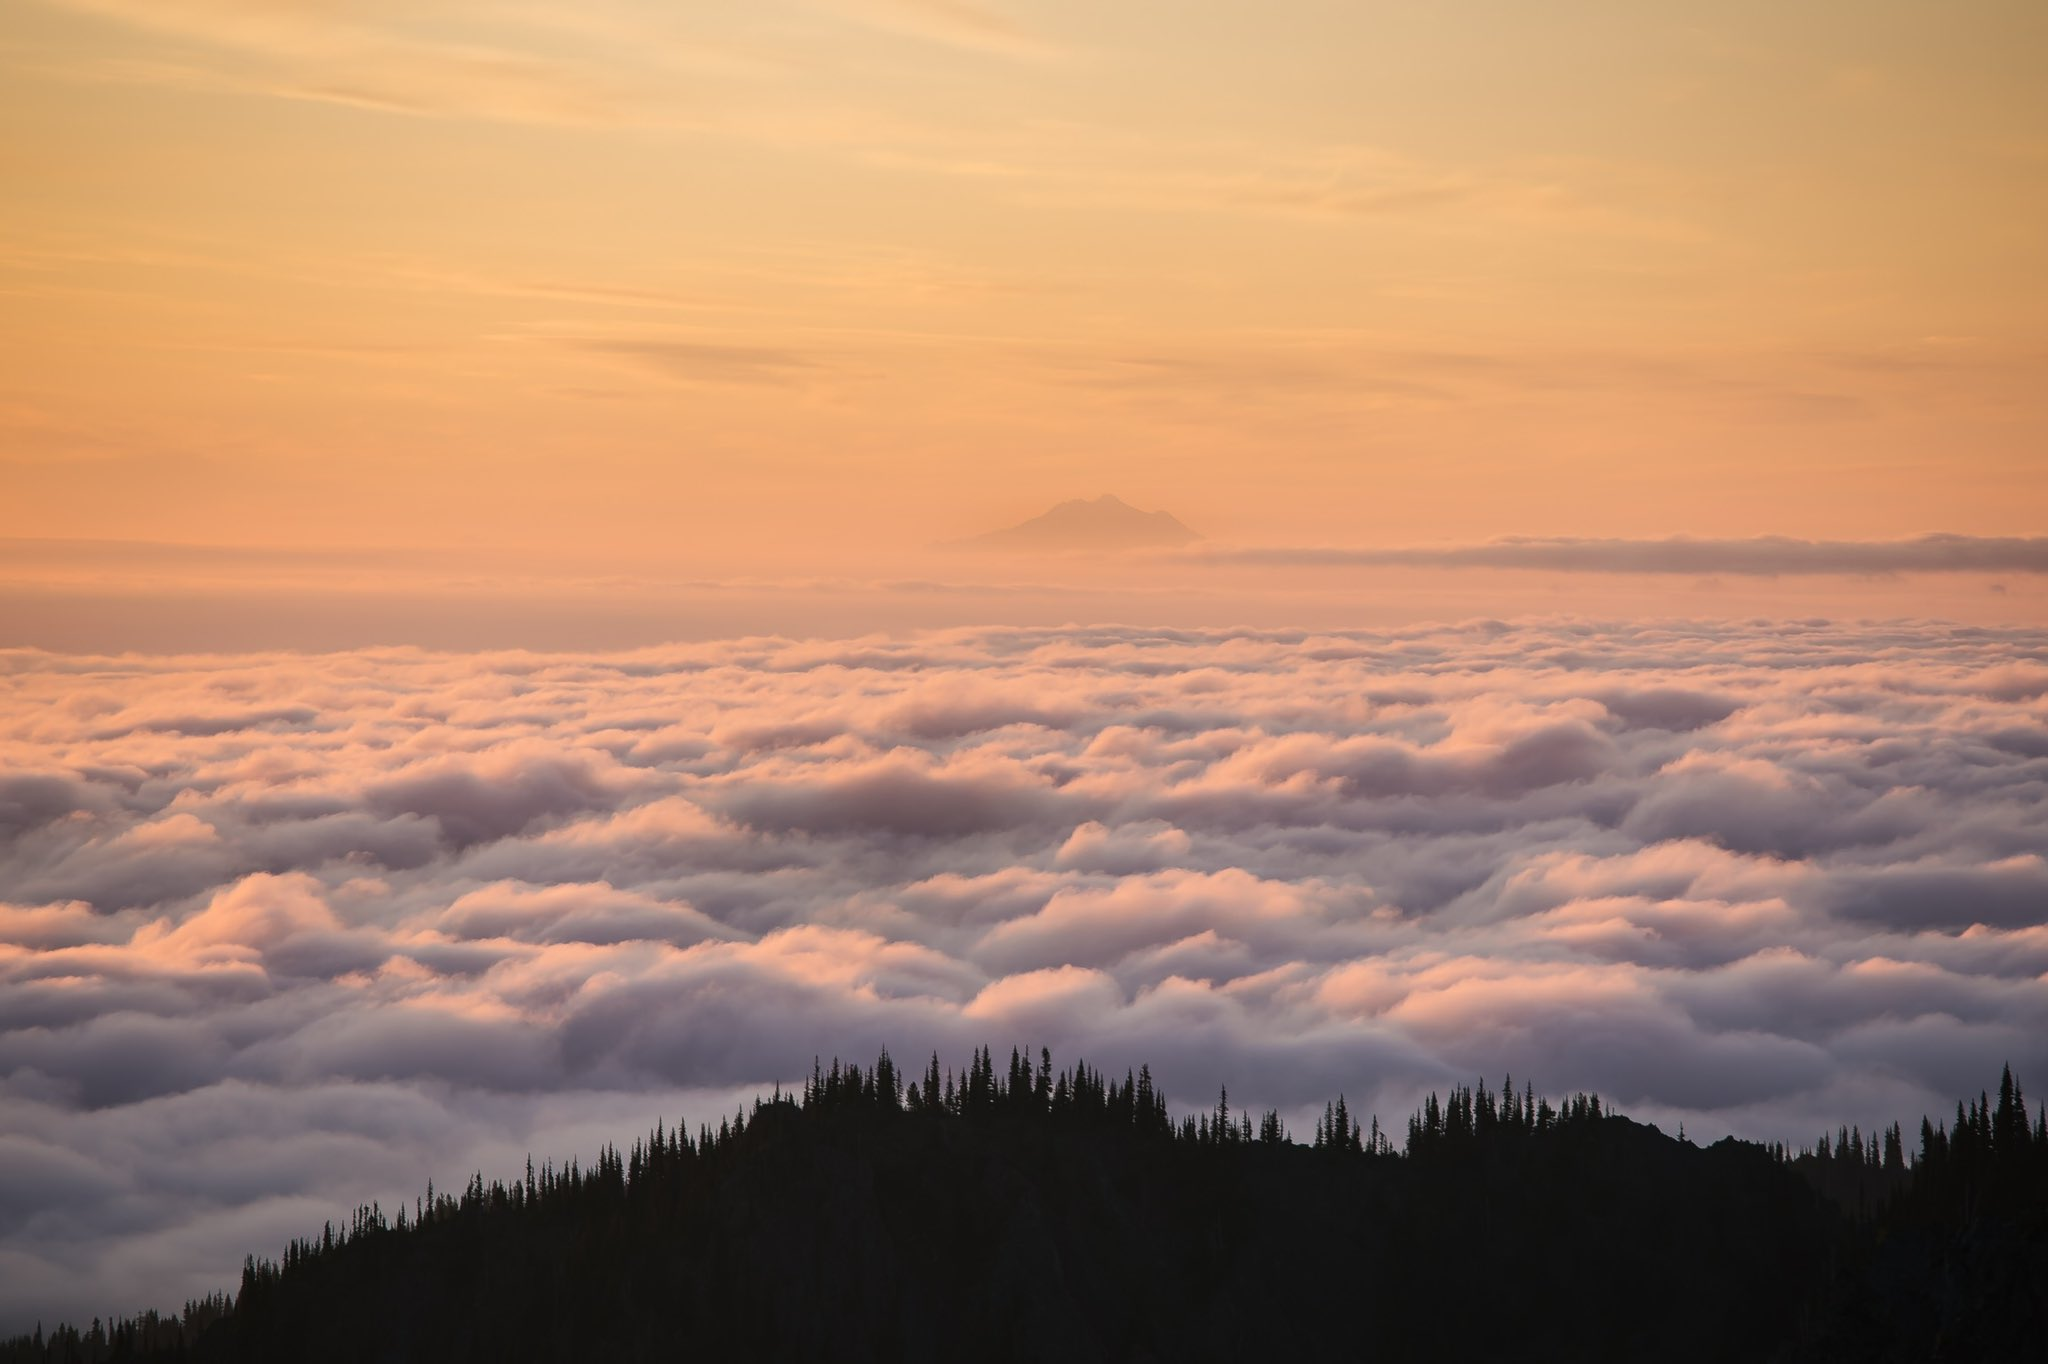 General 2048x1364 landscape nature sky clouds pine trees forest trees aerial view